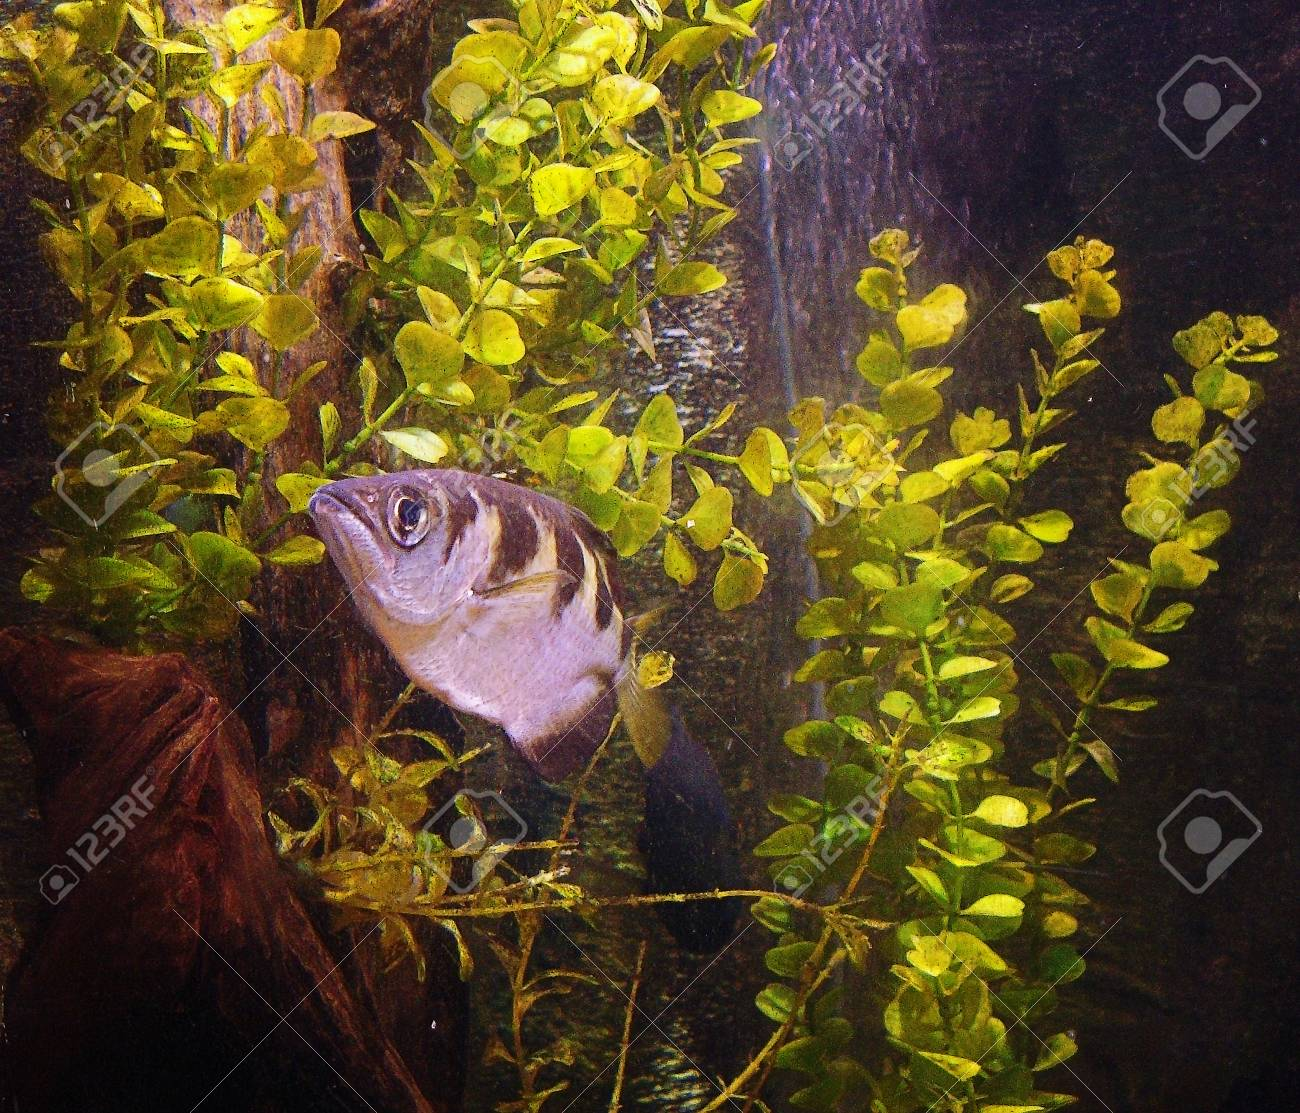 Photo Of A Black And White Striped Small Fish In Aquarium